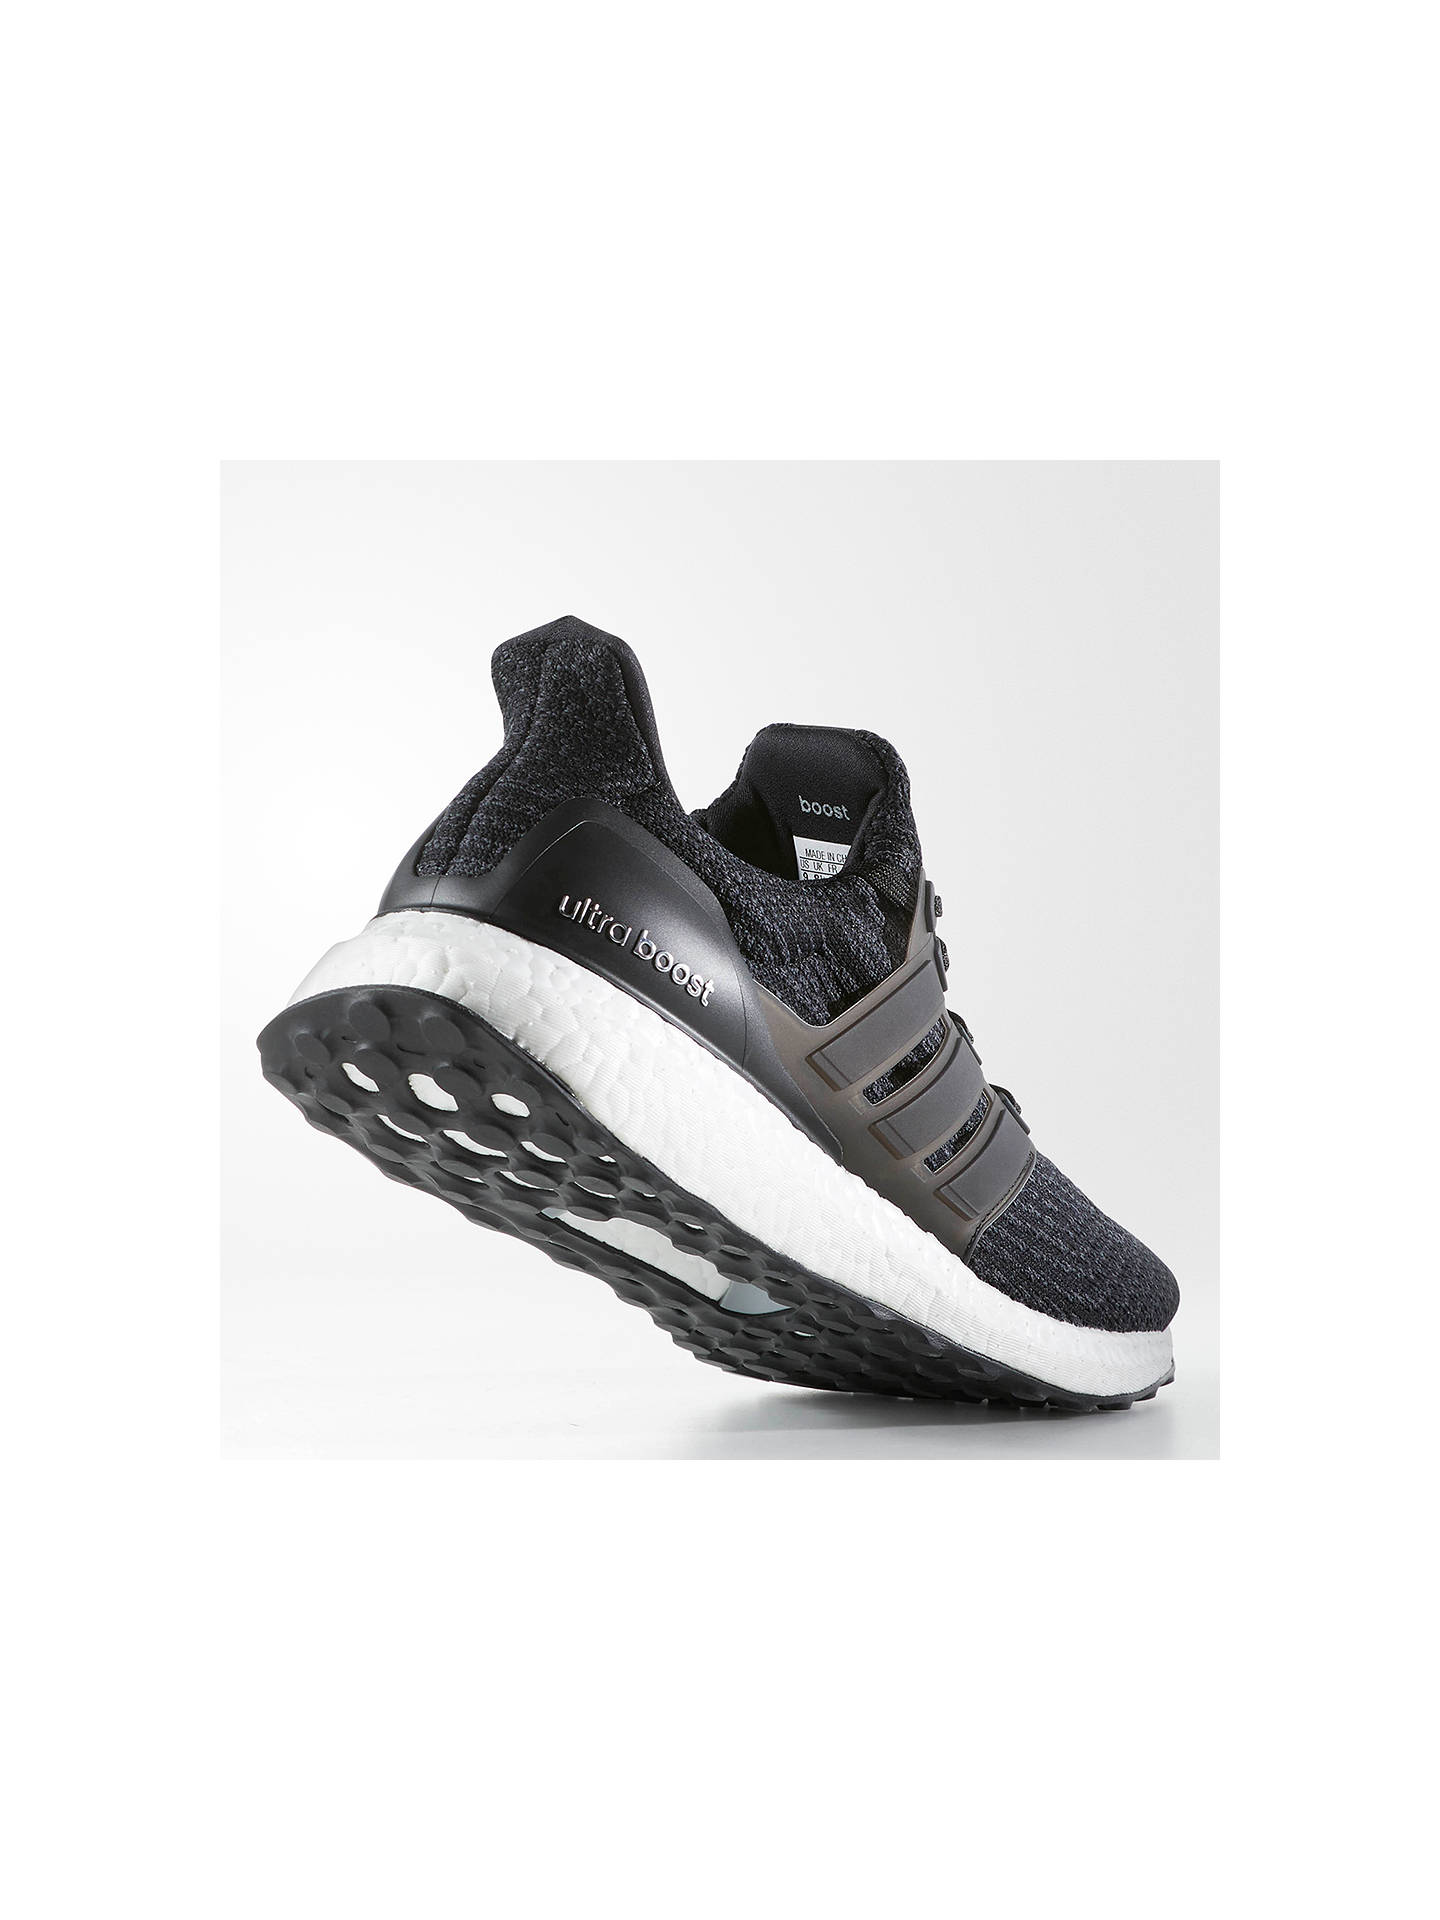 eefded3b3a75c australia adidas ultra boost 3.0 grey white 2acf4 8ae35  where to buy  buyadidas ultra boost womens running shoes core black dark grey 4 online at